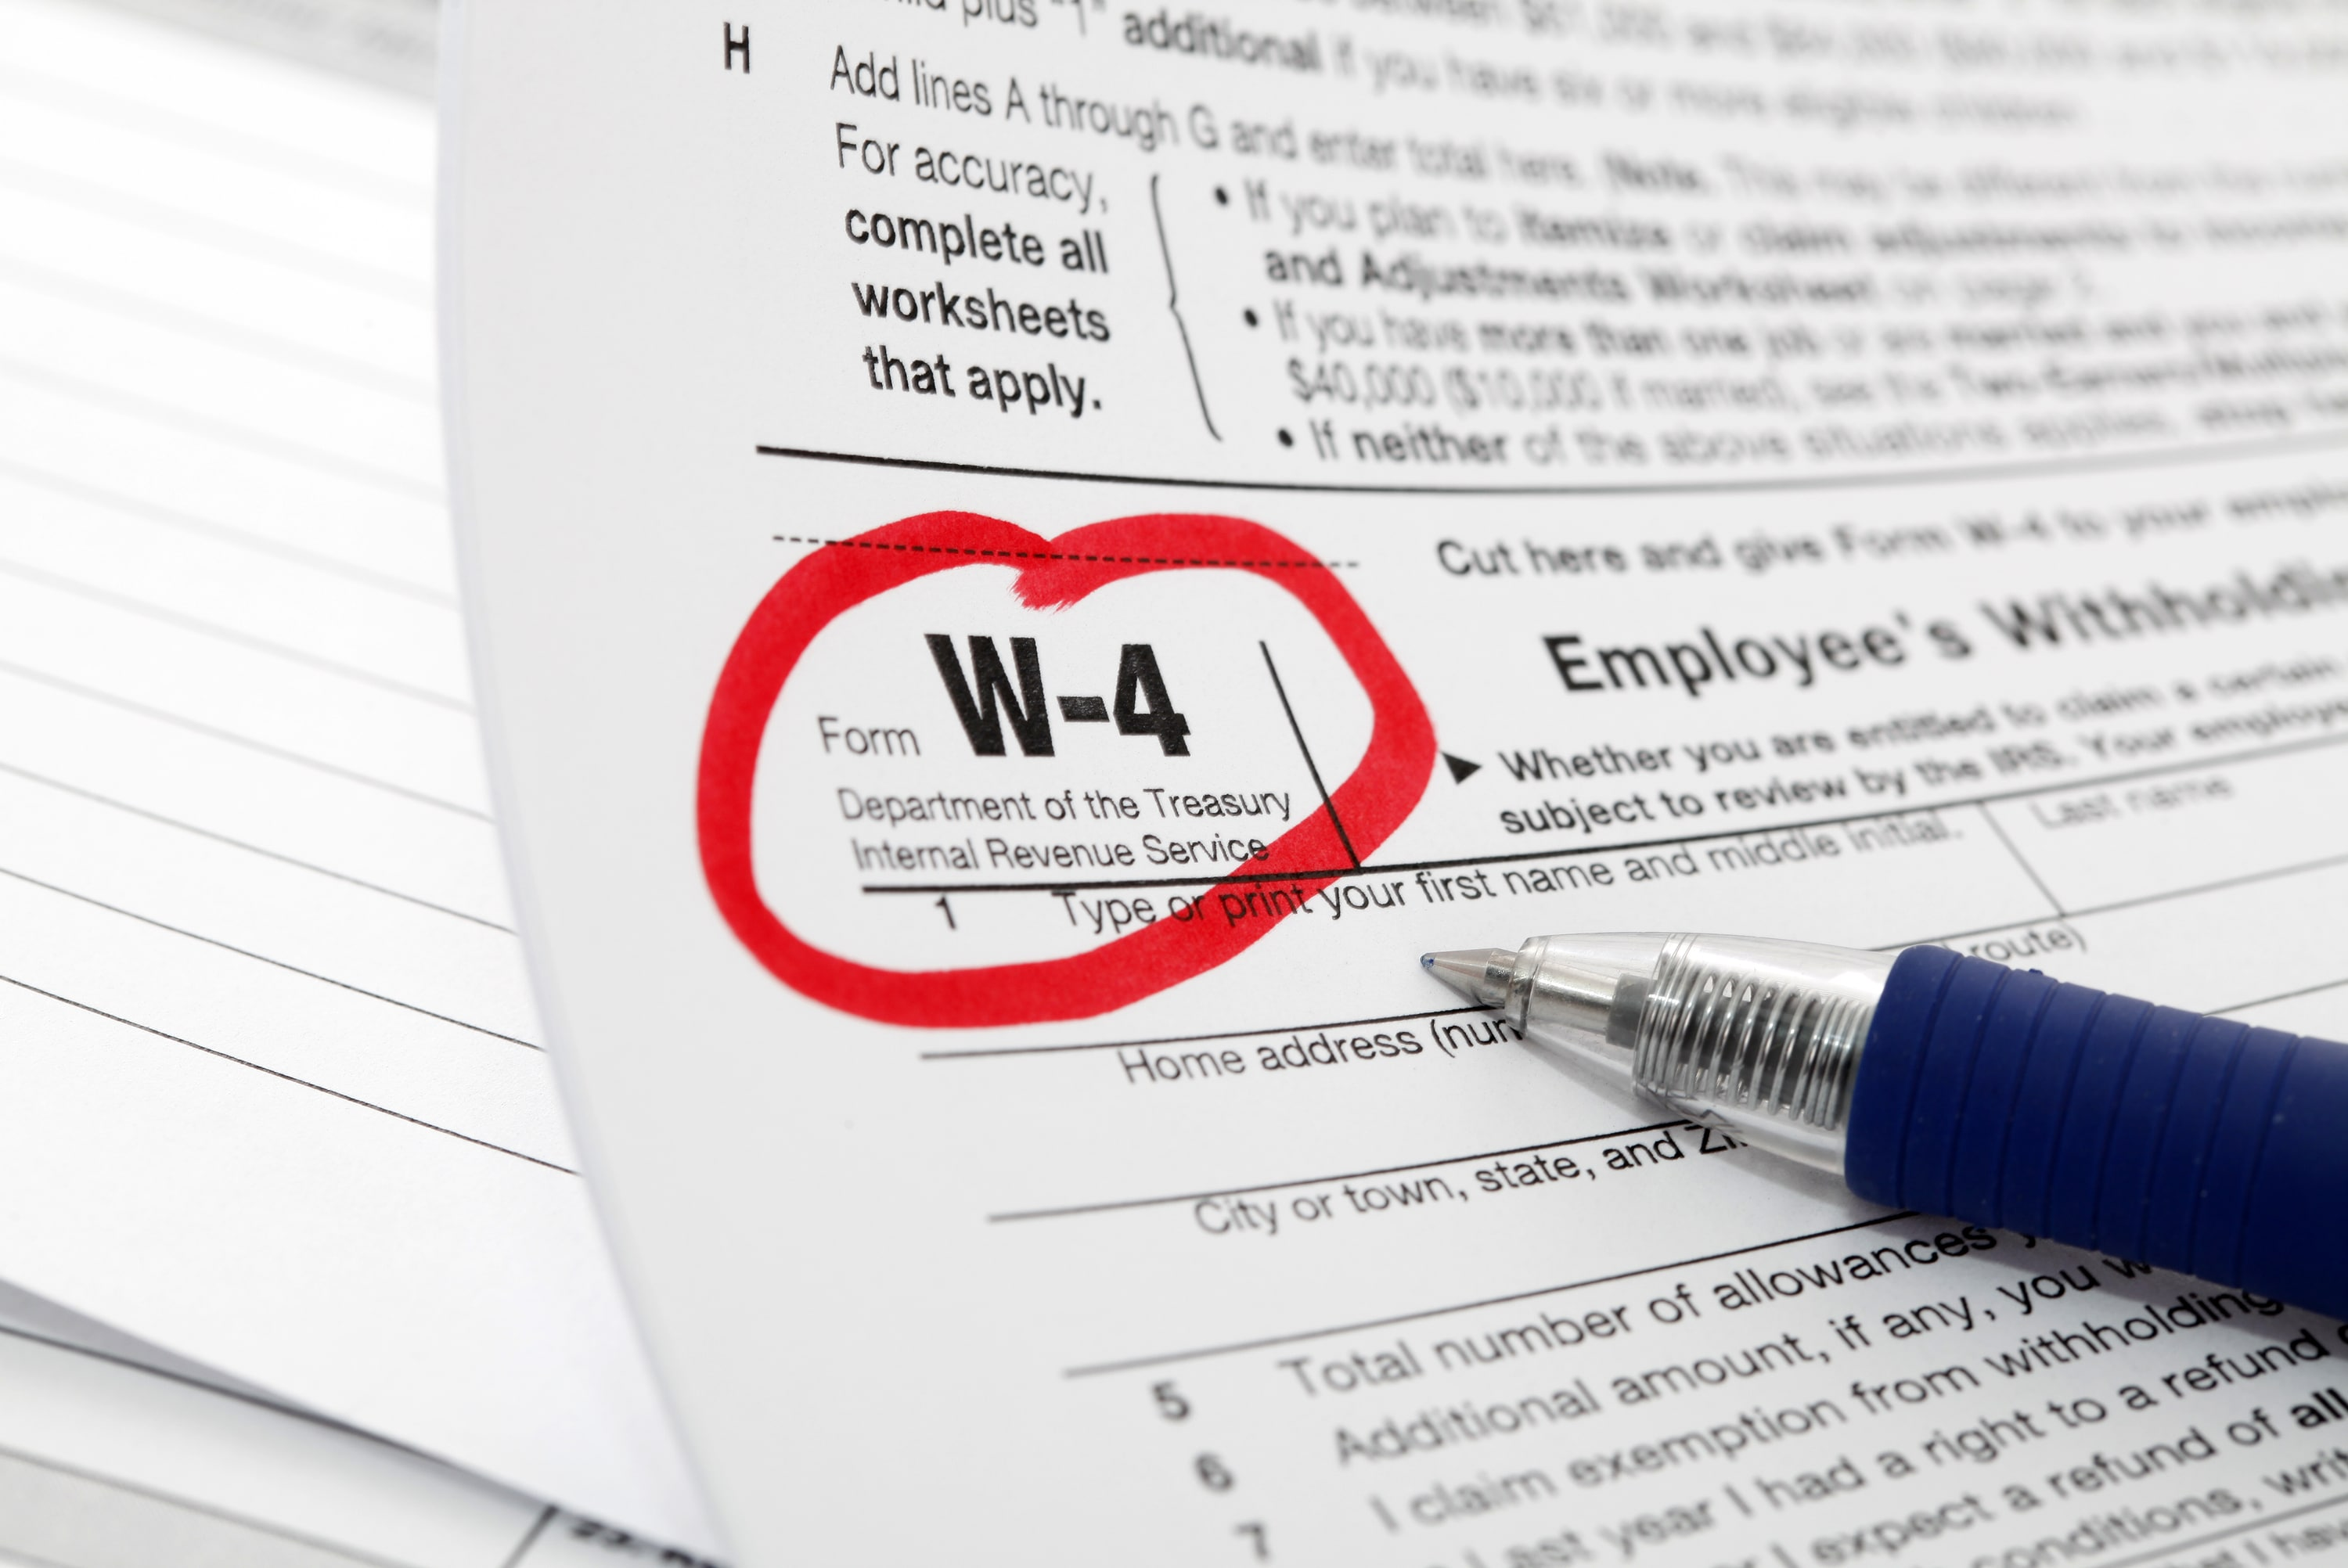 How To Adjust Your Federal Income Tax Withholding Allowances